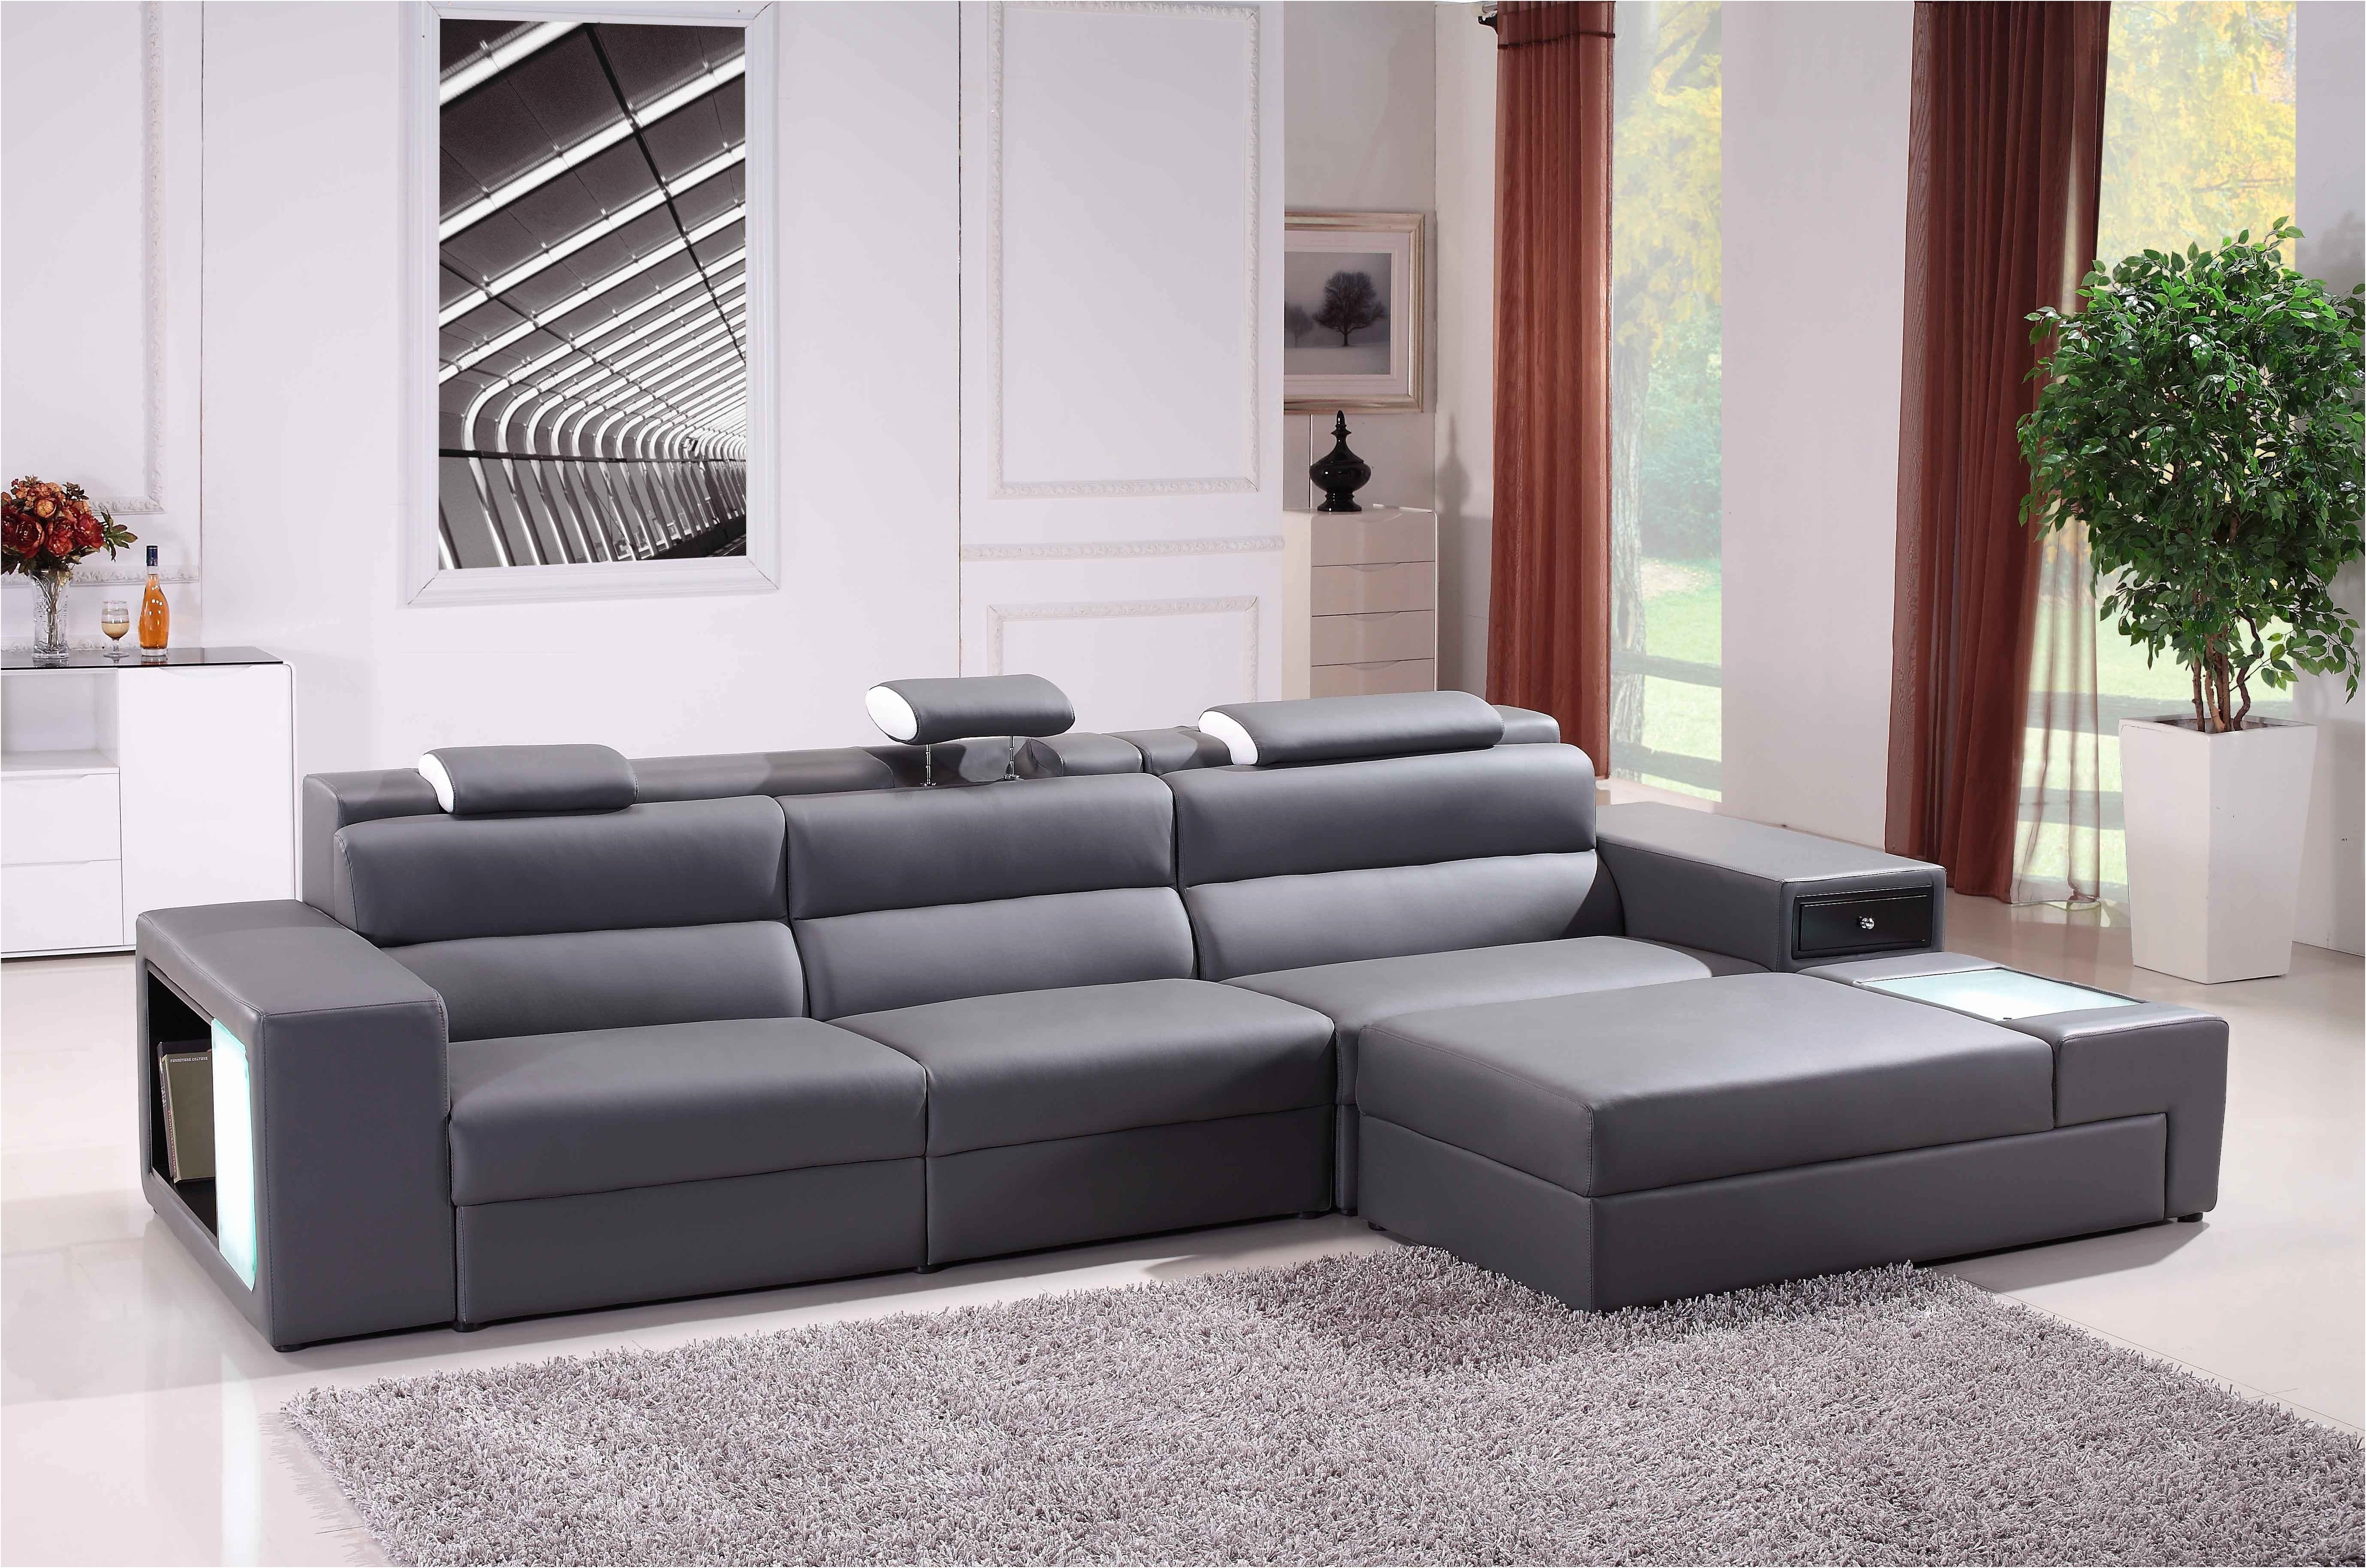 Popular Quebec Sectional Sofas Intended For Light Gray Sectional Sofa Modern Grey Fabric Leather Mason Divani (View 12 of 20)